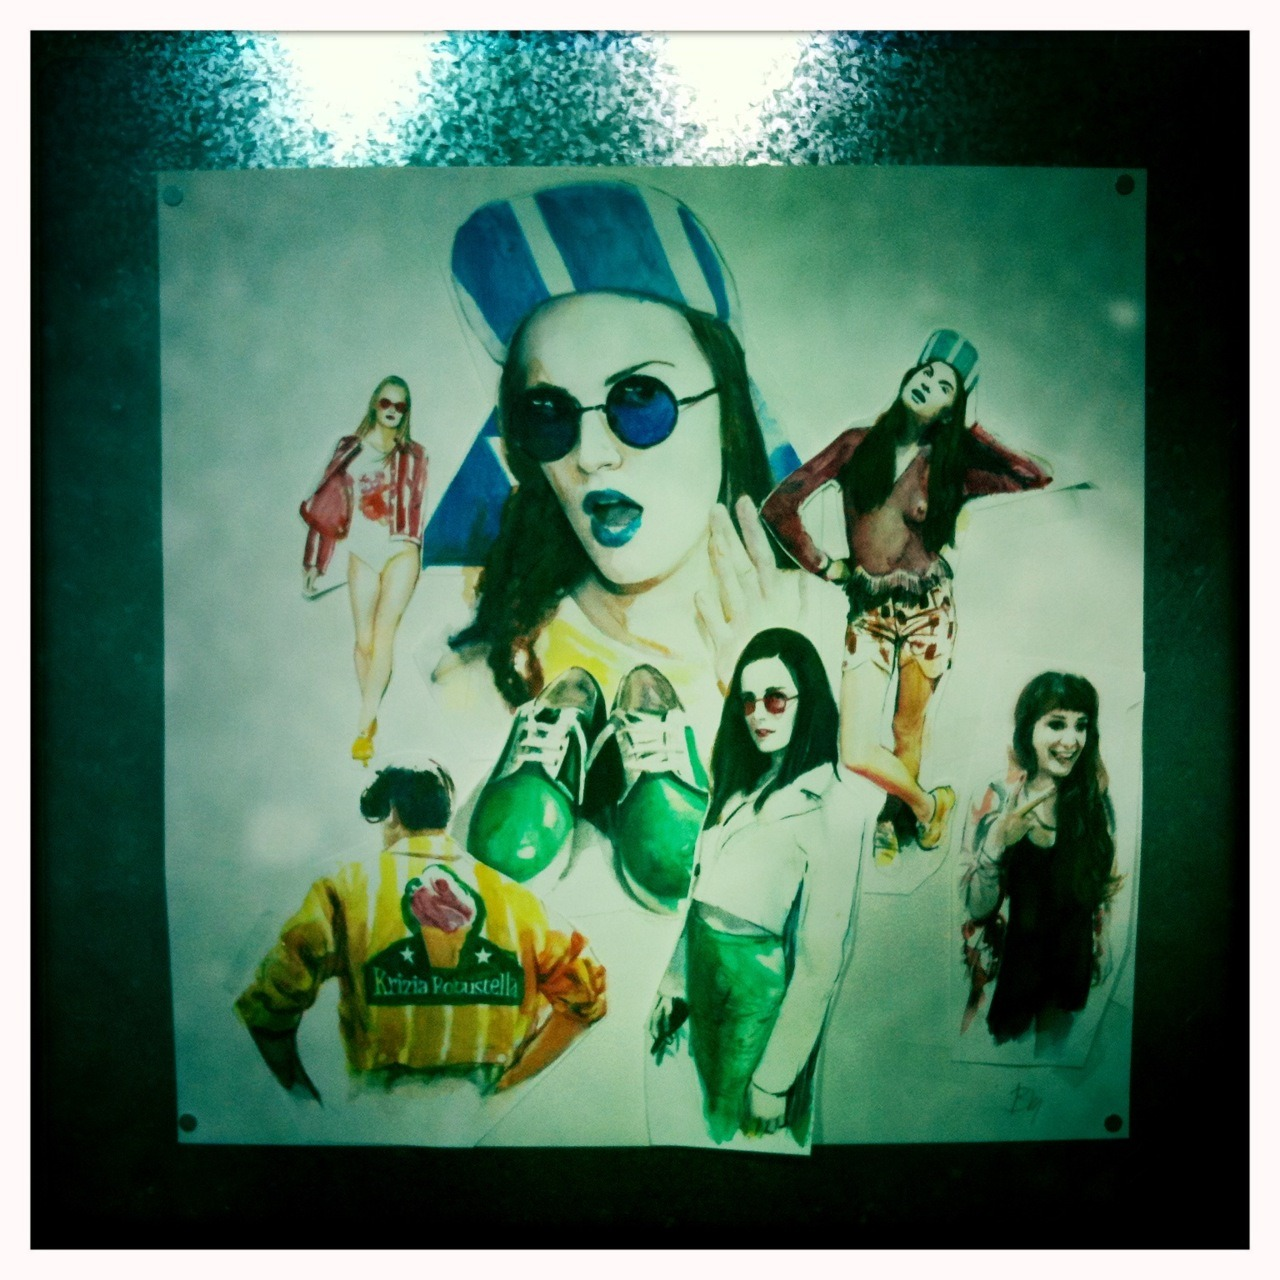 In kr store! John S Lens, Blanko Film, No Flash, Taken with Hipstamatic